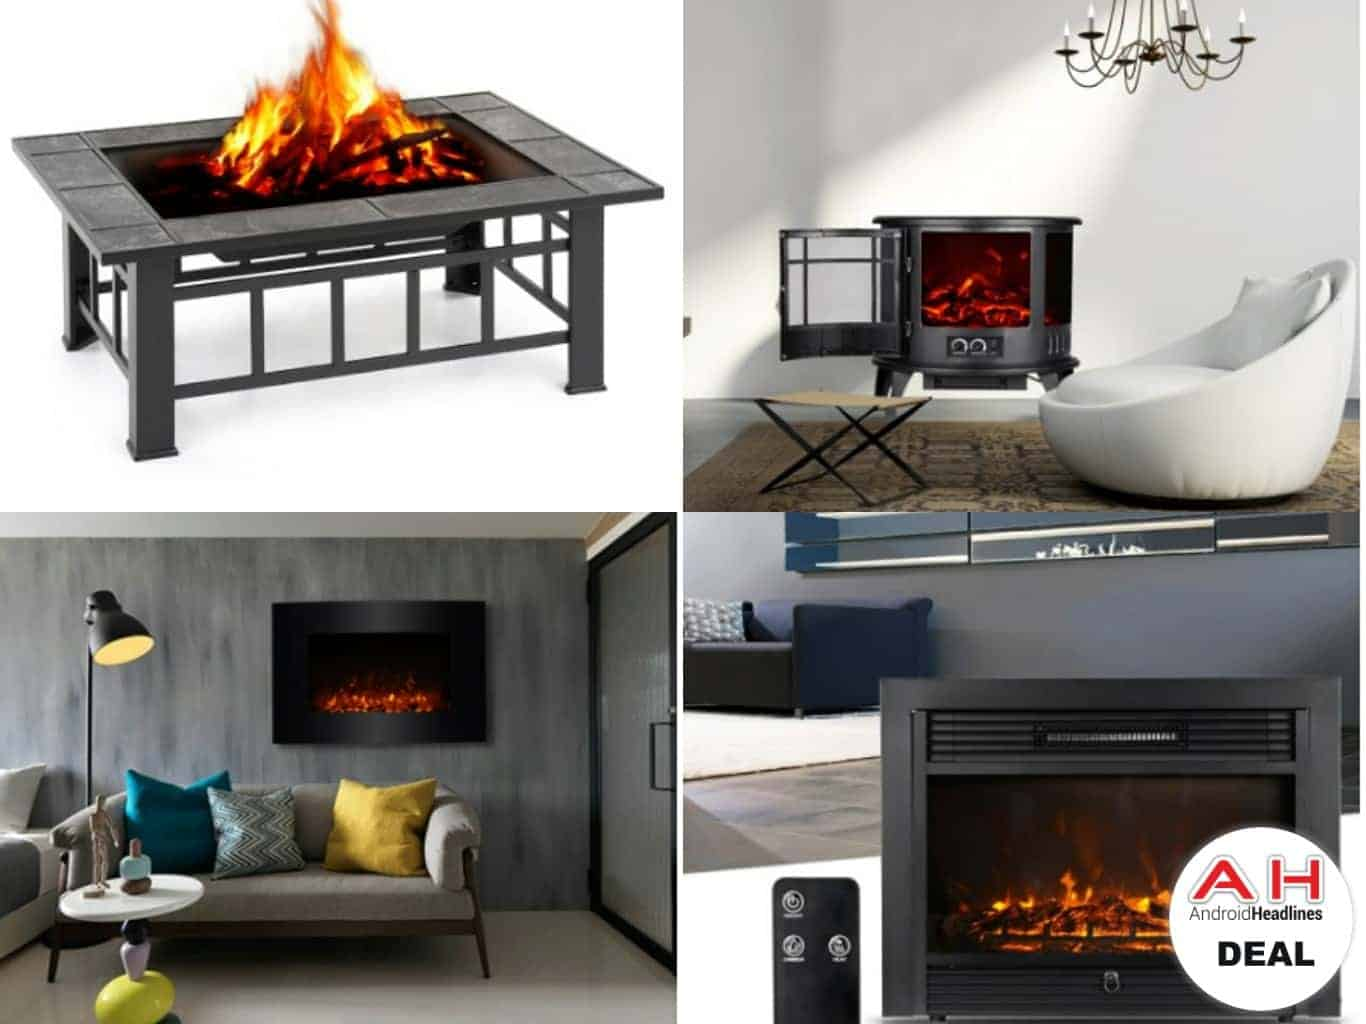 ecdl faux stone rock sale fireplaces electric info fireplace on